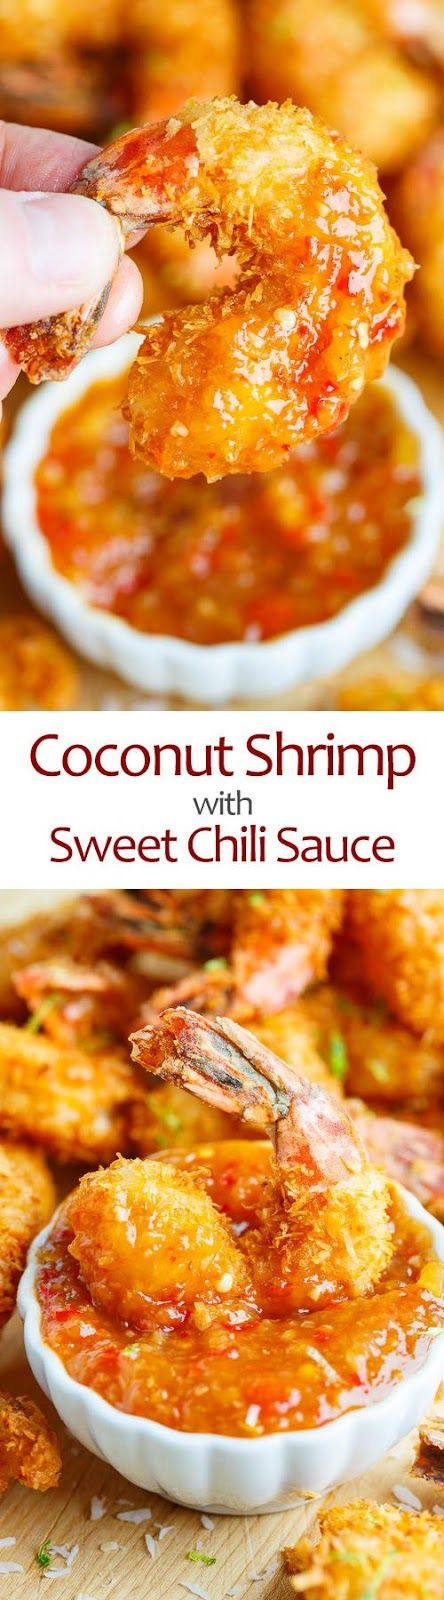 Ingredients   1 pound shrimp, peeled and deveined   salt and pepper   1/3 cup flour (gluten-free for gluten-free)   2 eggs, lightly bea...